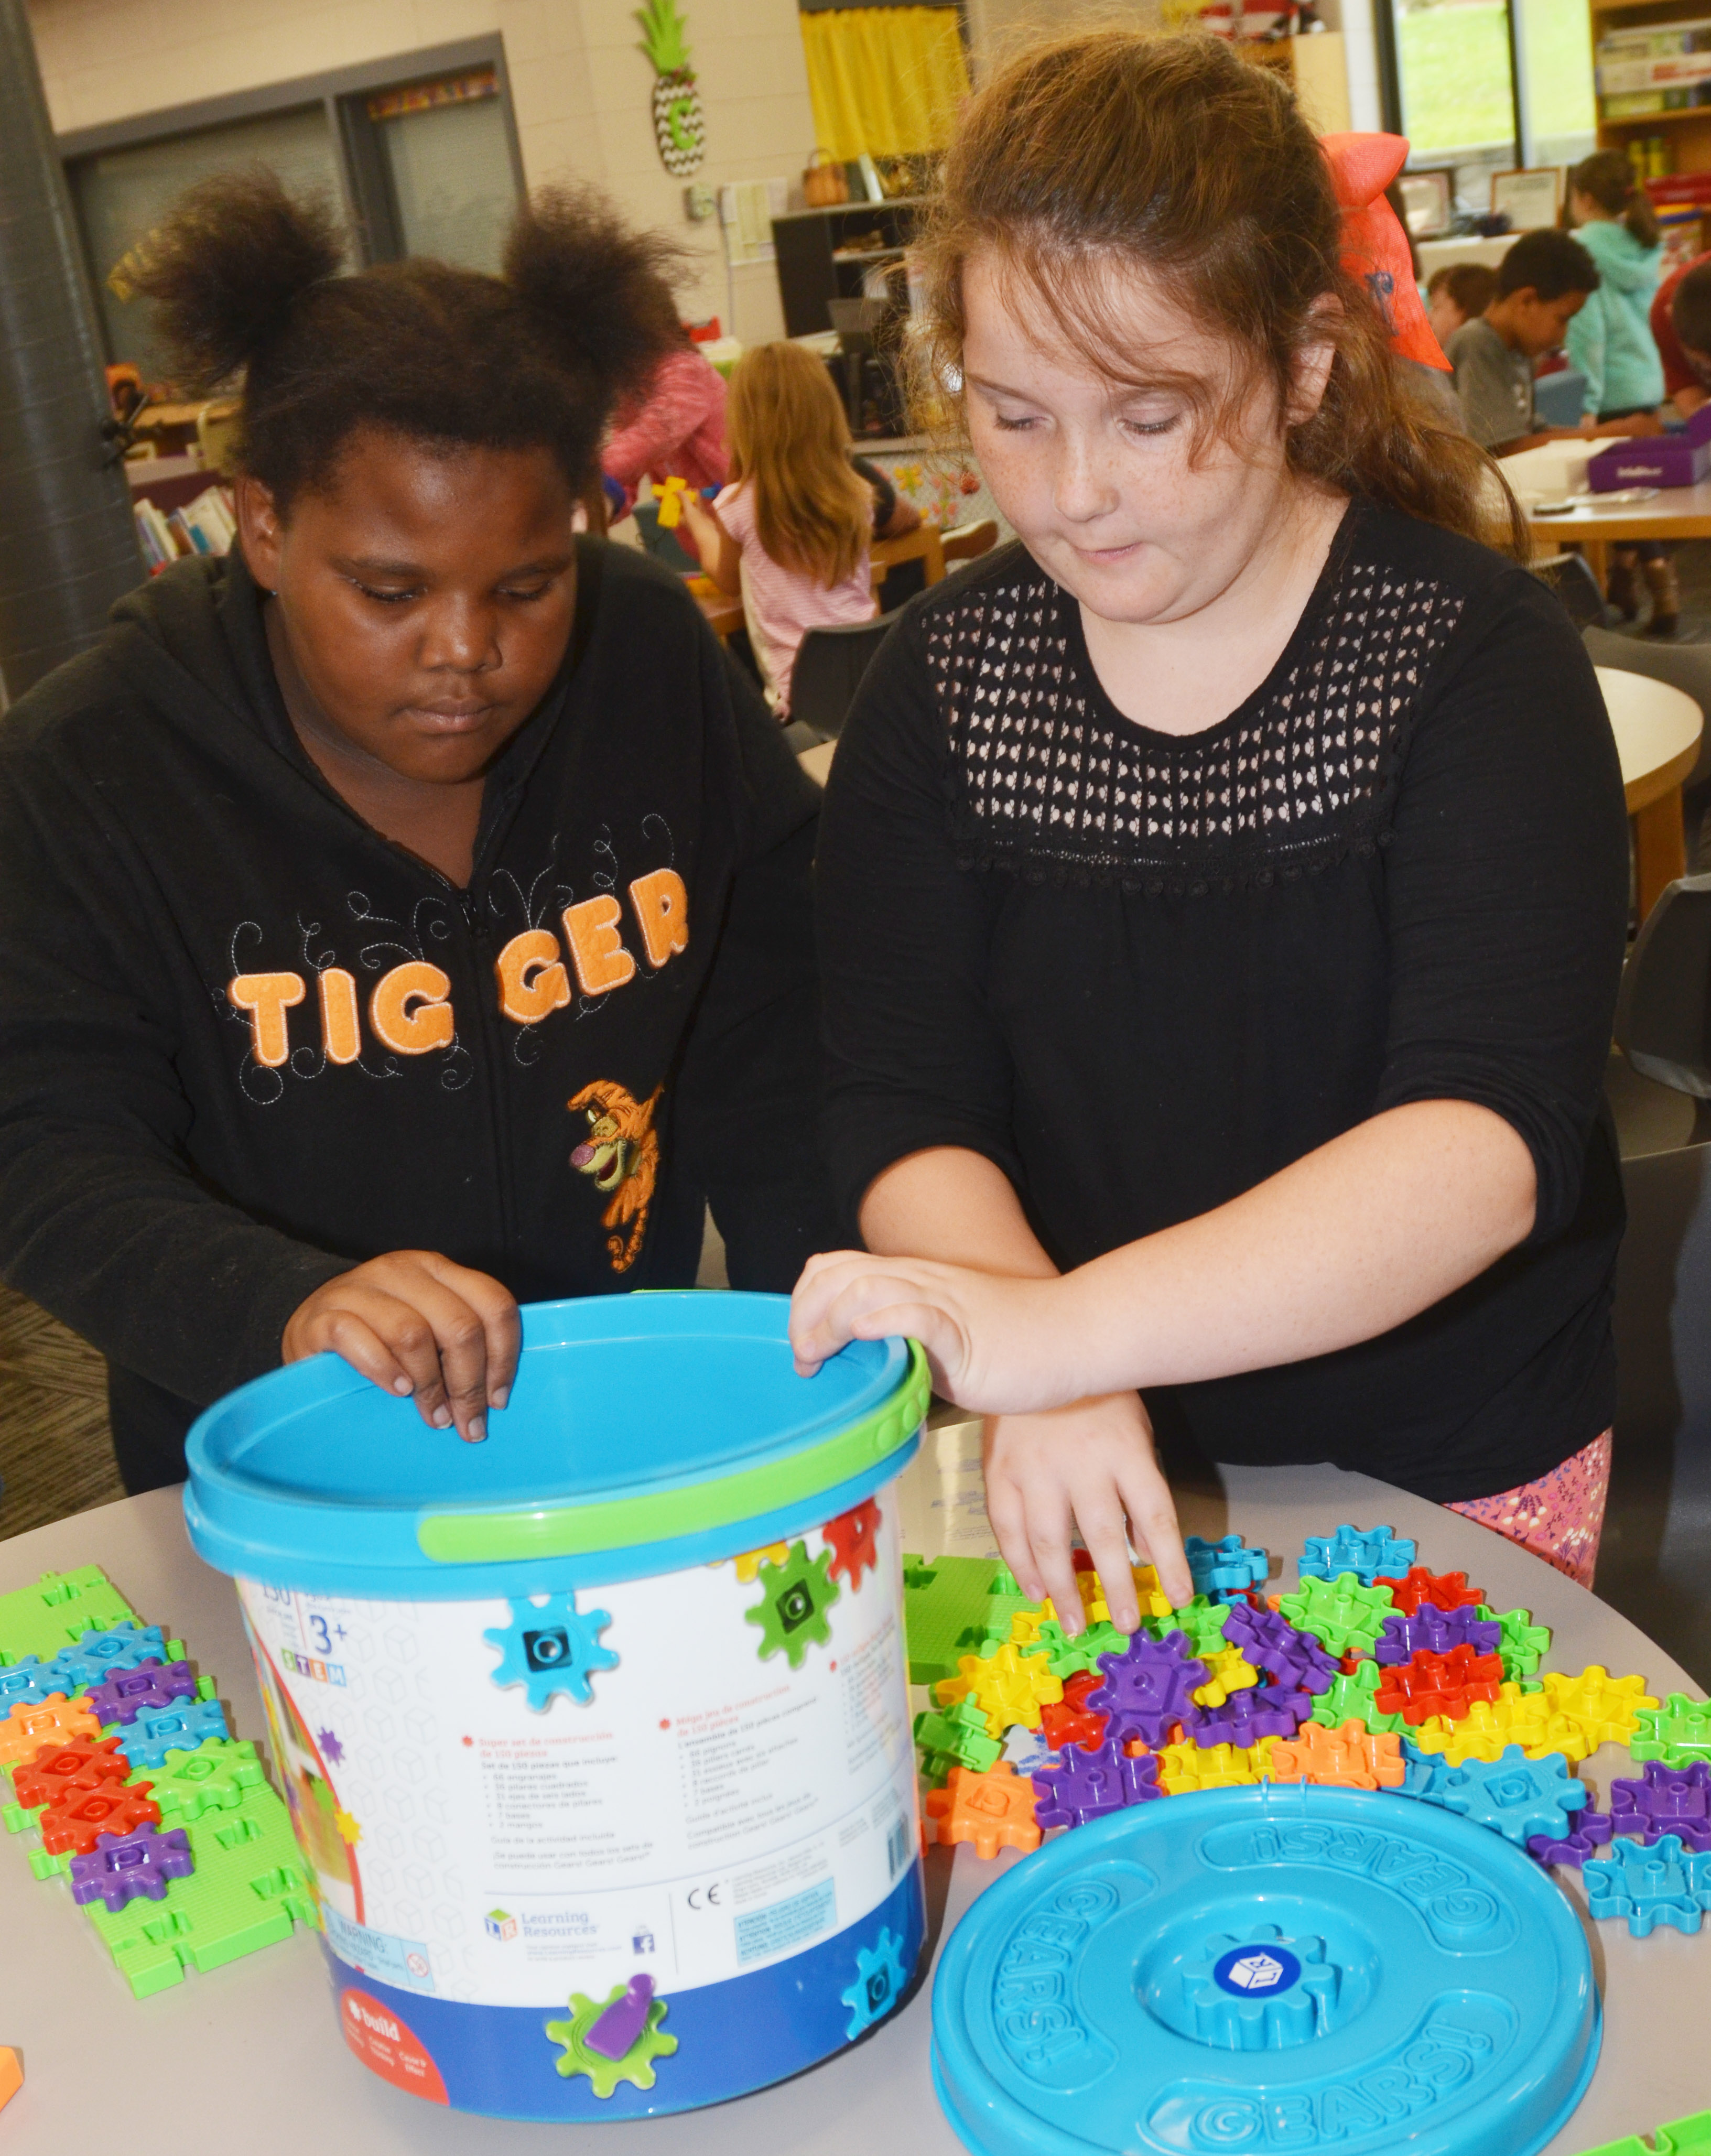 CES fourth-graders Talaysia Daniels, at left, and Madison Philpott build with STEM toys.